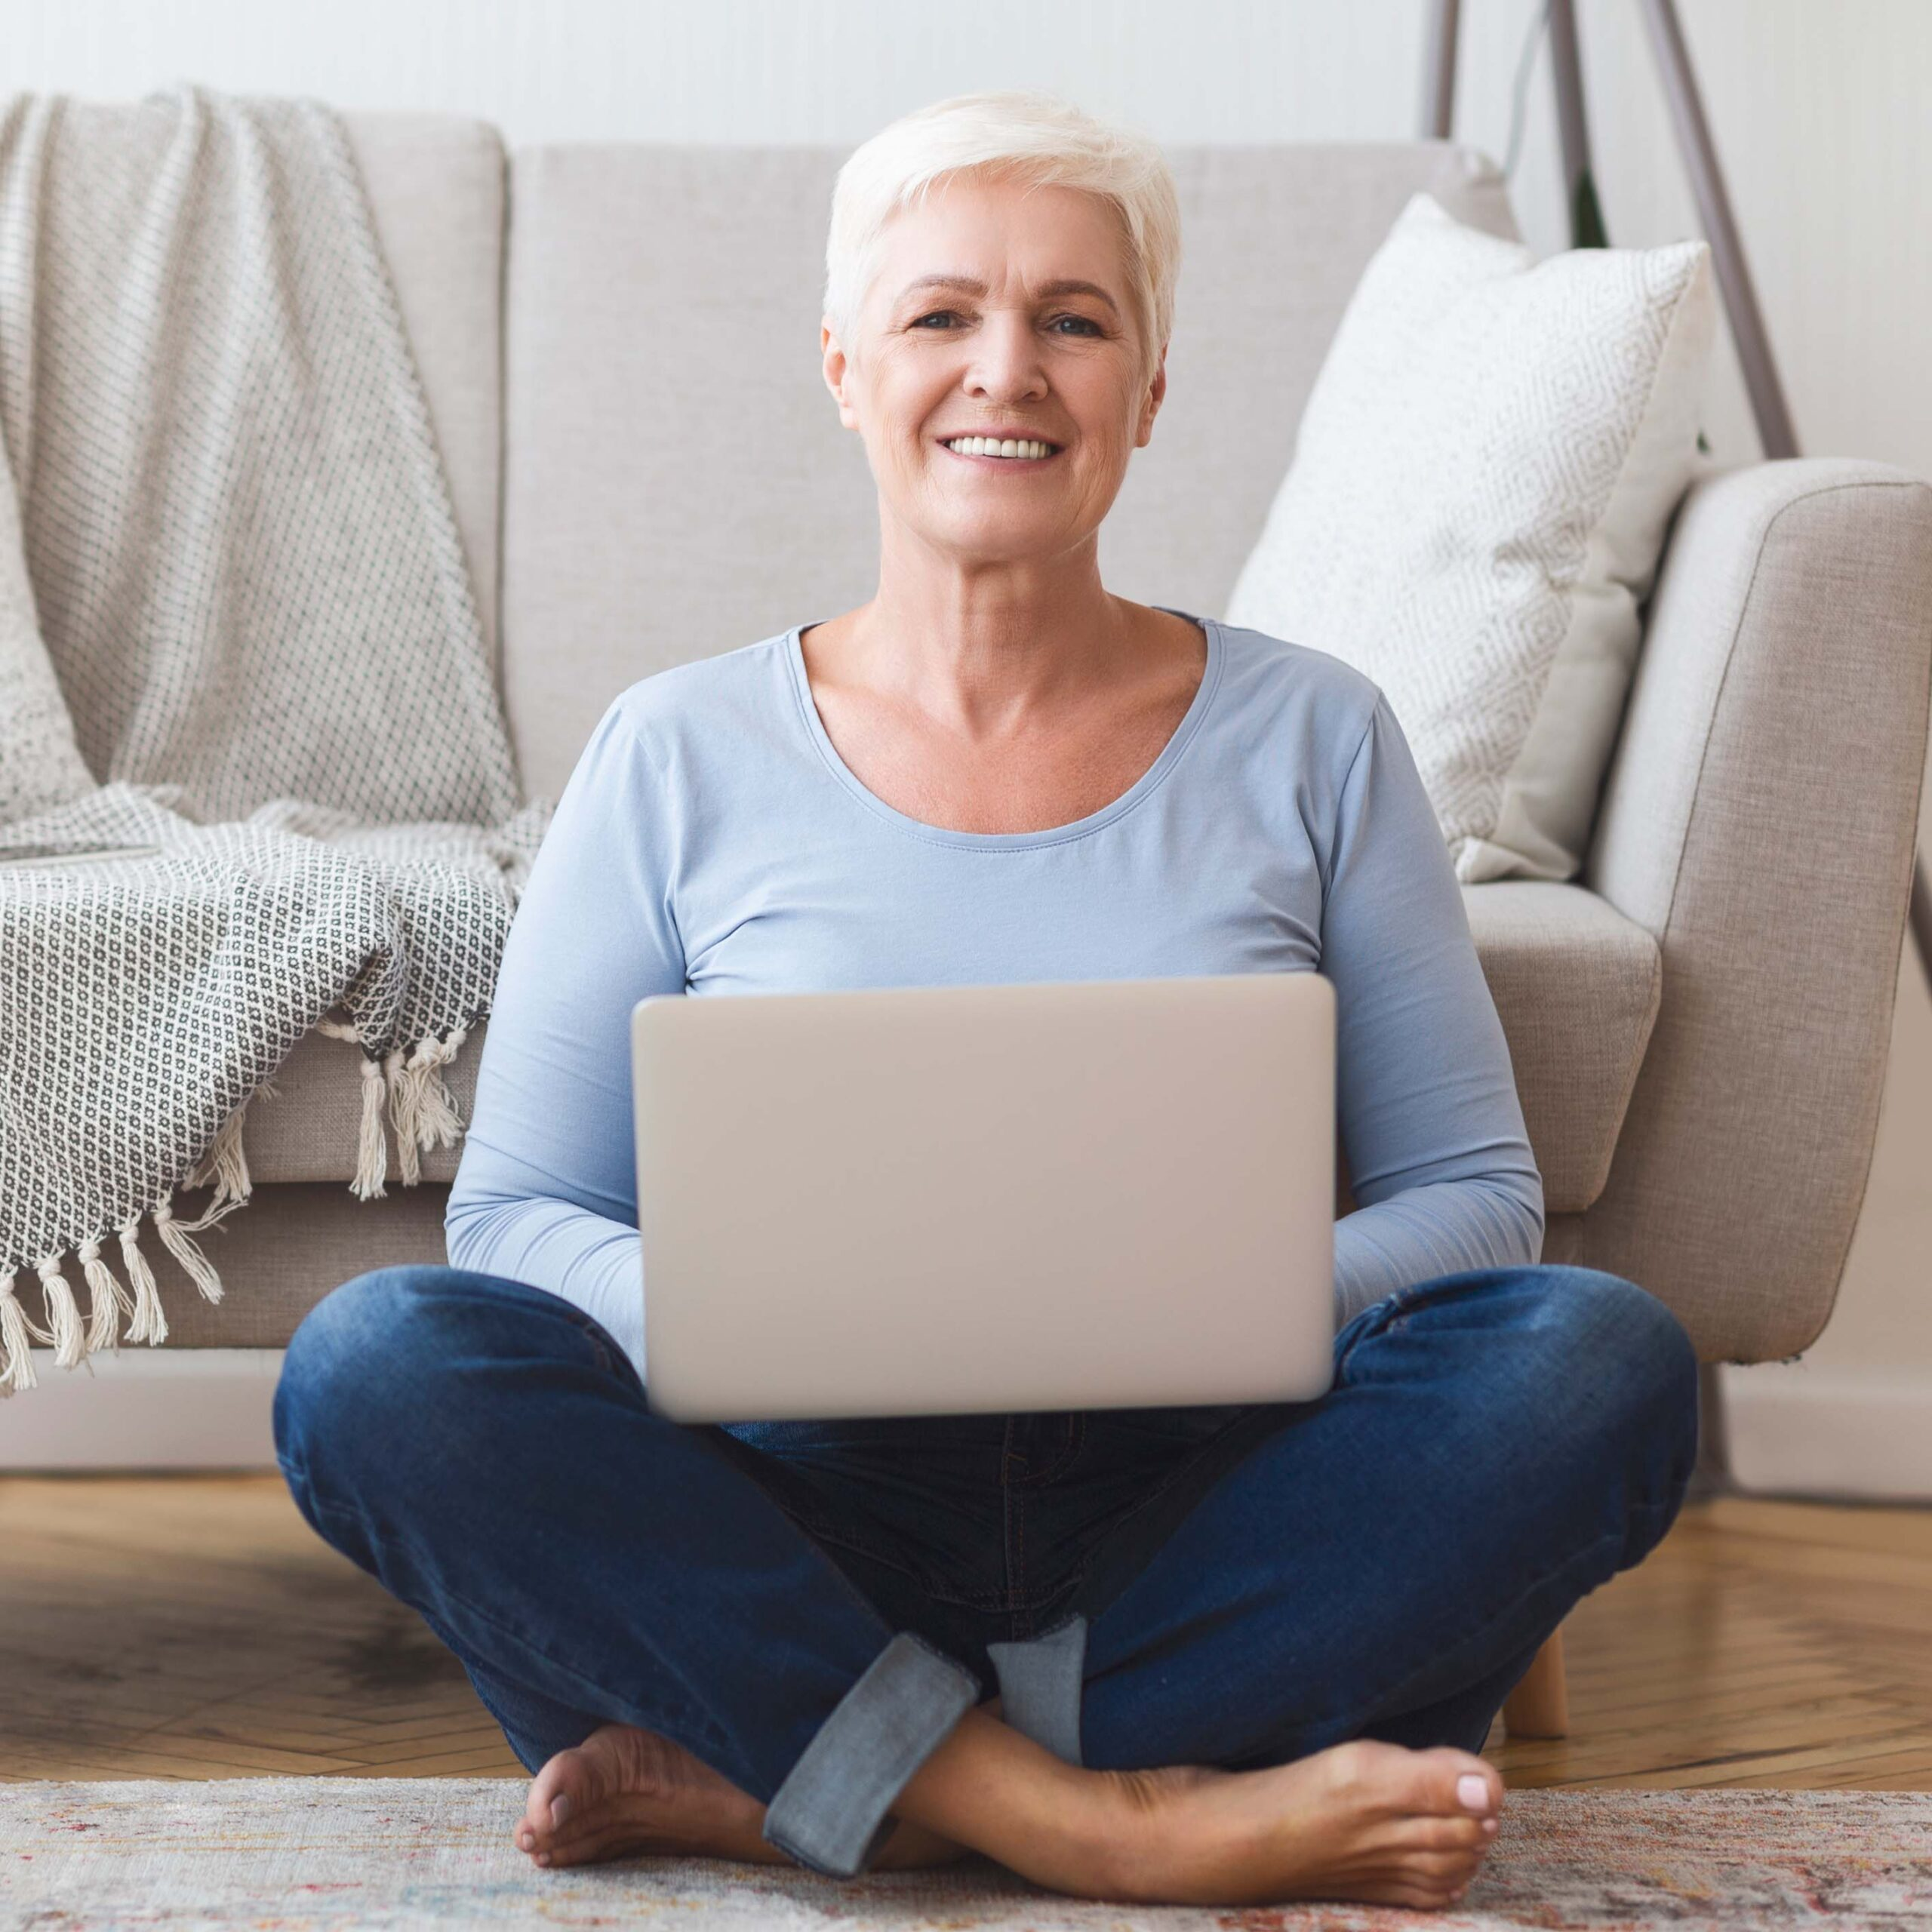 Senior Woman Sitting In The Floor With A Laptop On Her Lap And A Sofa In The Back